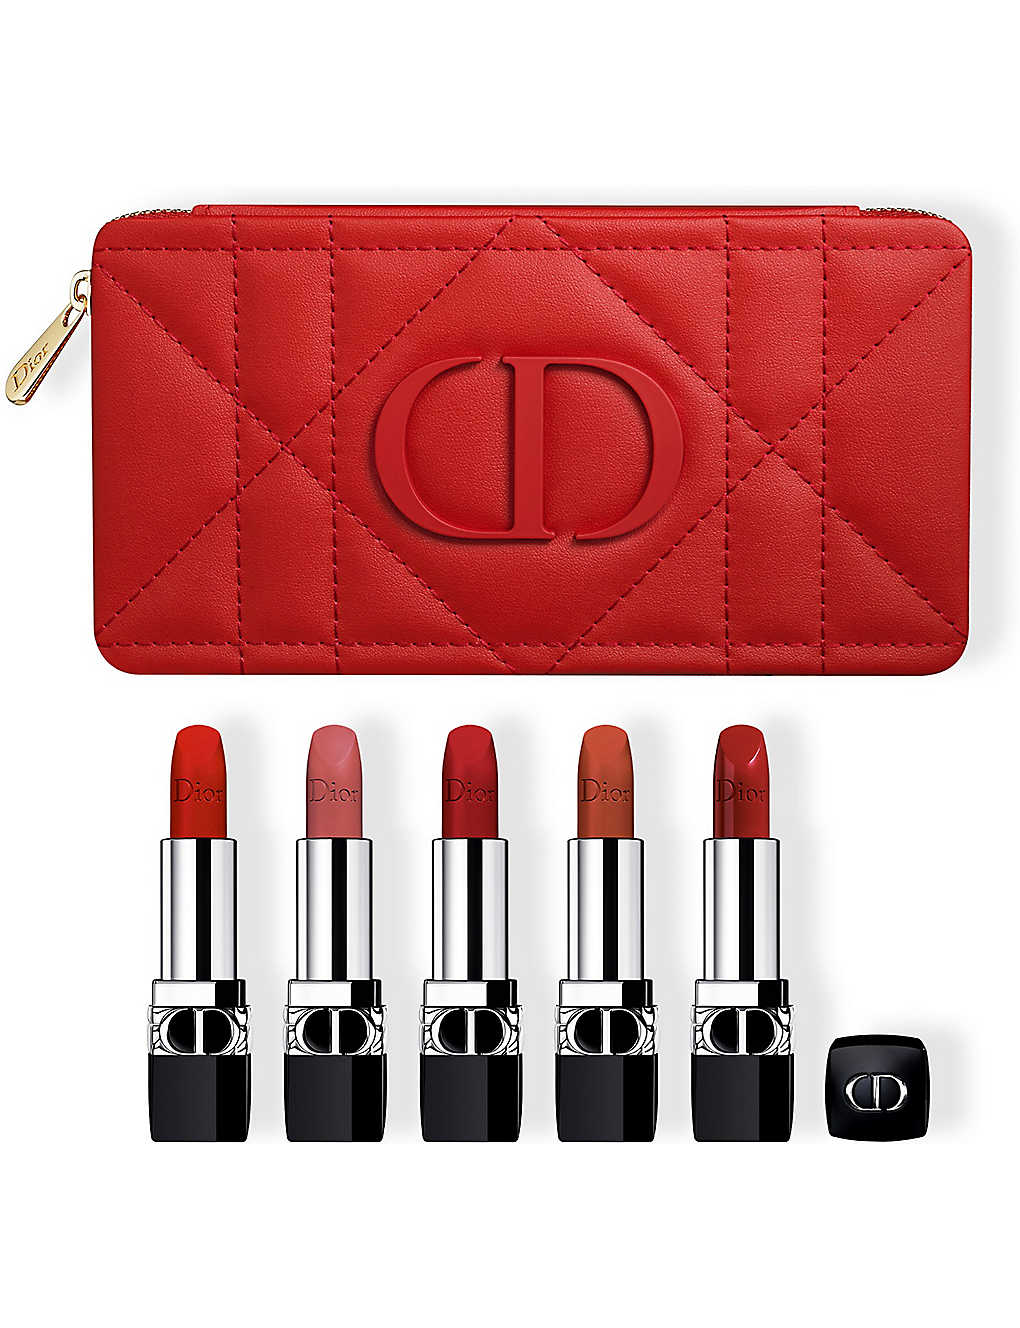 Selfridges: Dior Rouge Couture Lunar New Year Collection gift set 8